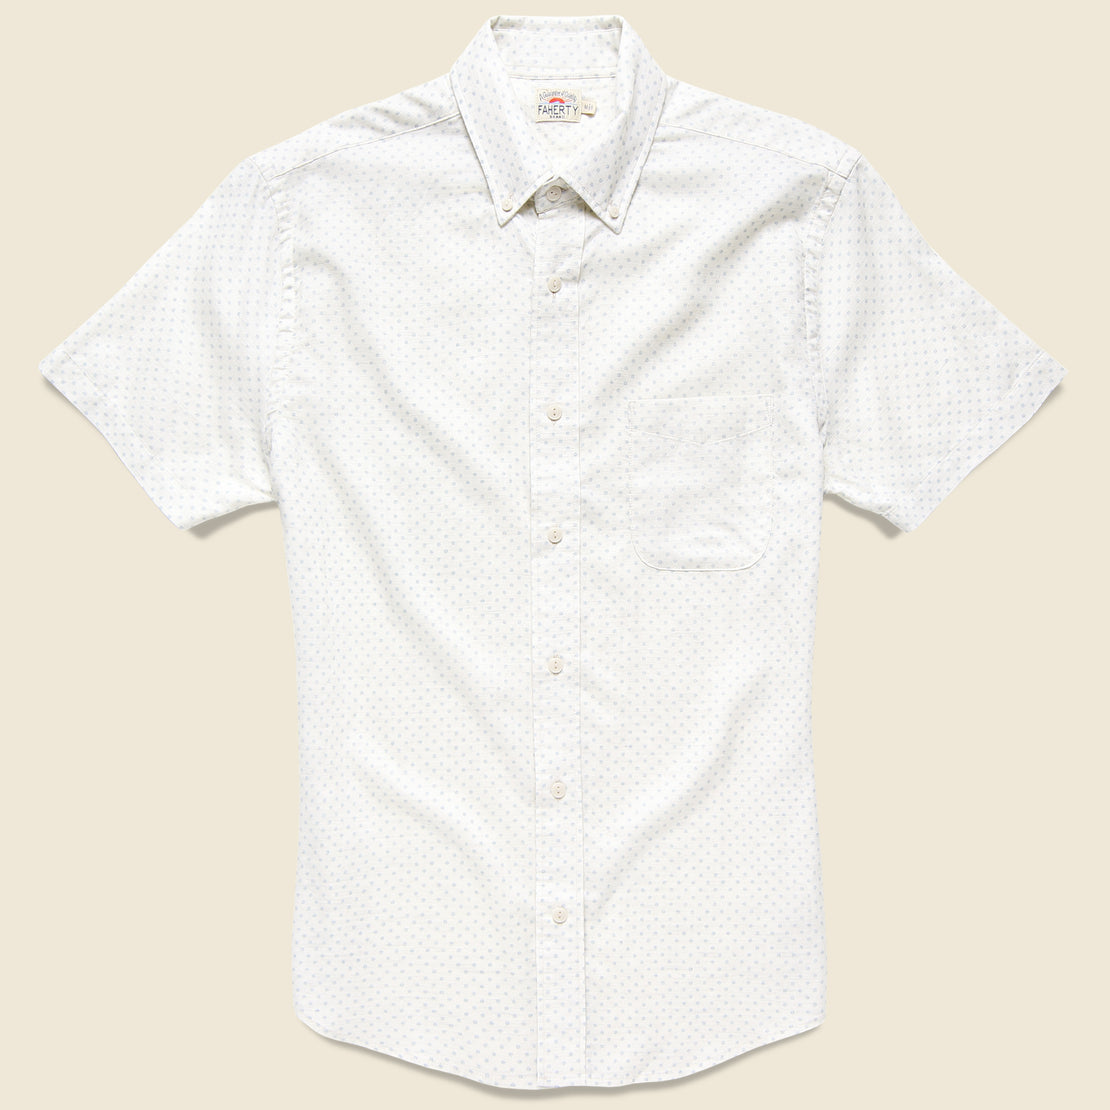 Faherty Pacific Shirt - Sunburst Print